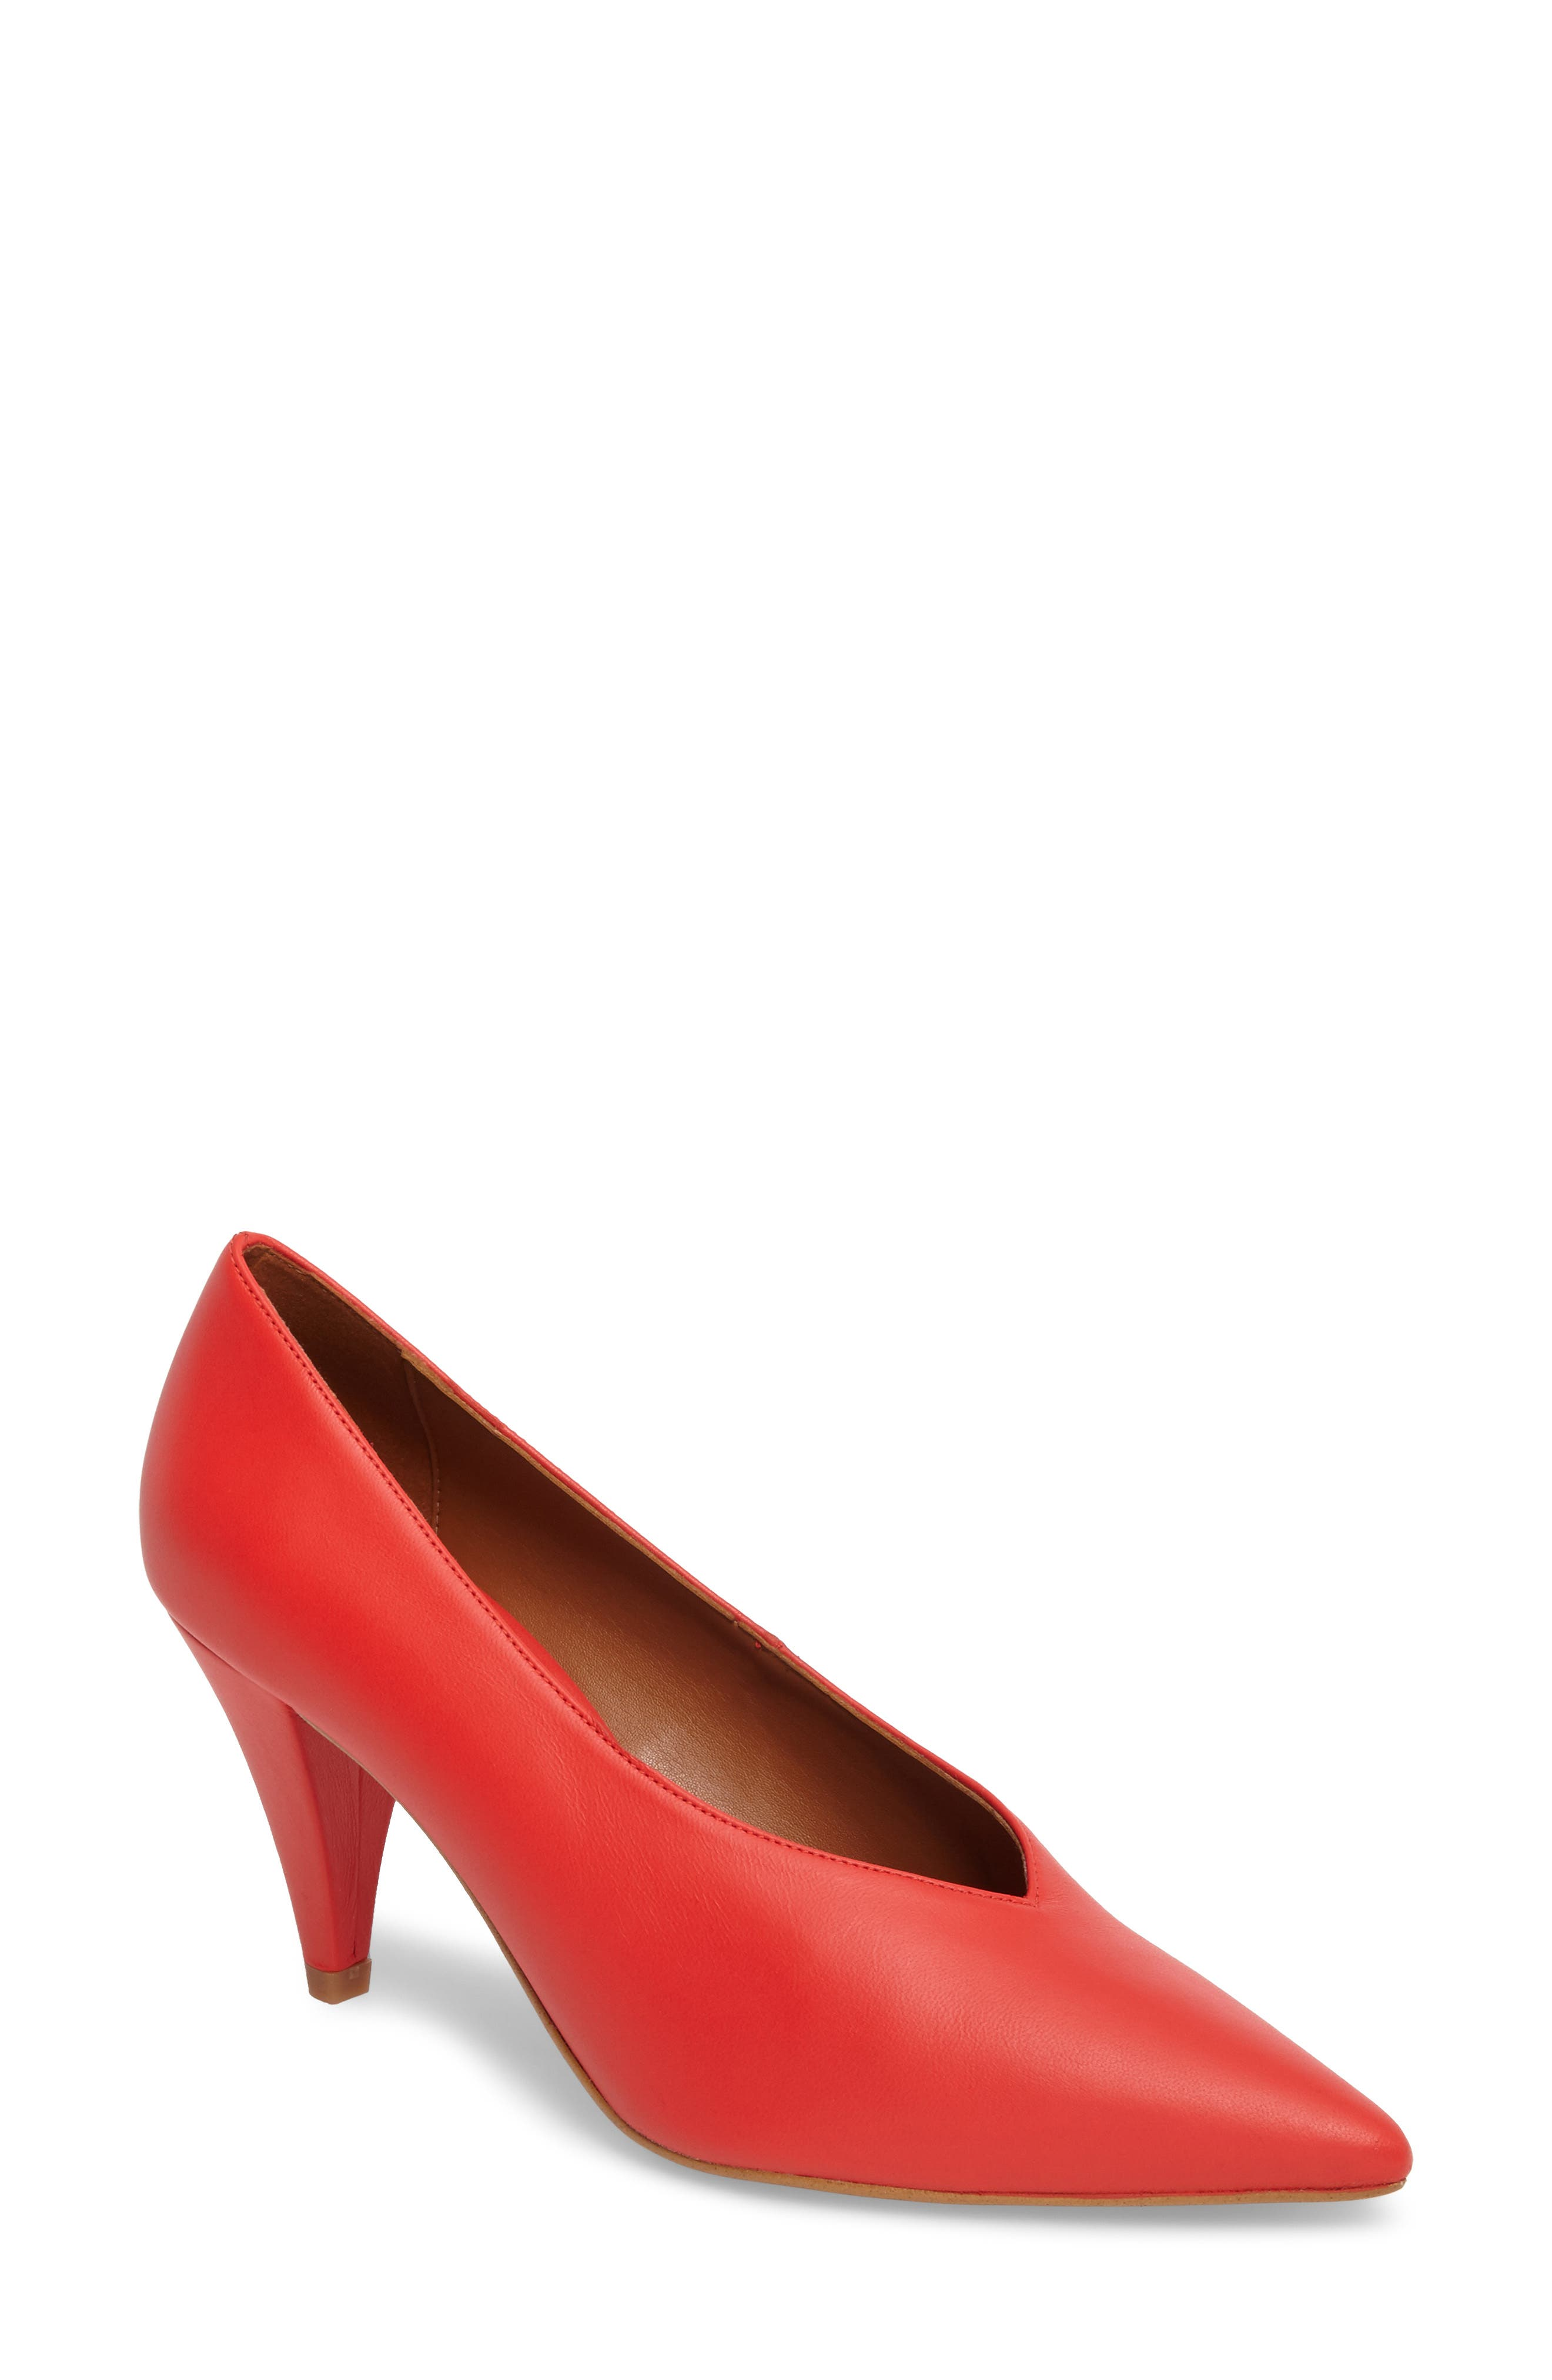 Journal Pointy Toe Pump,                         Main,                         color, Red